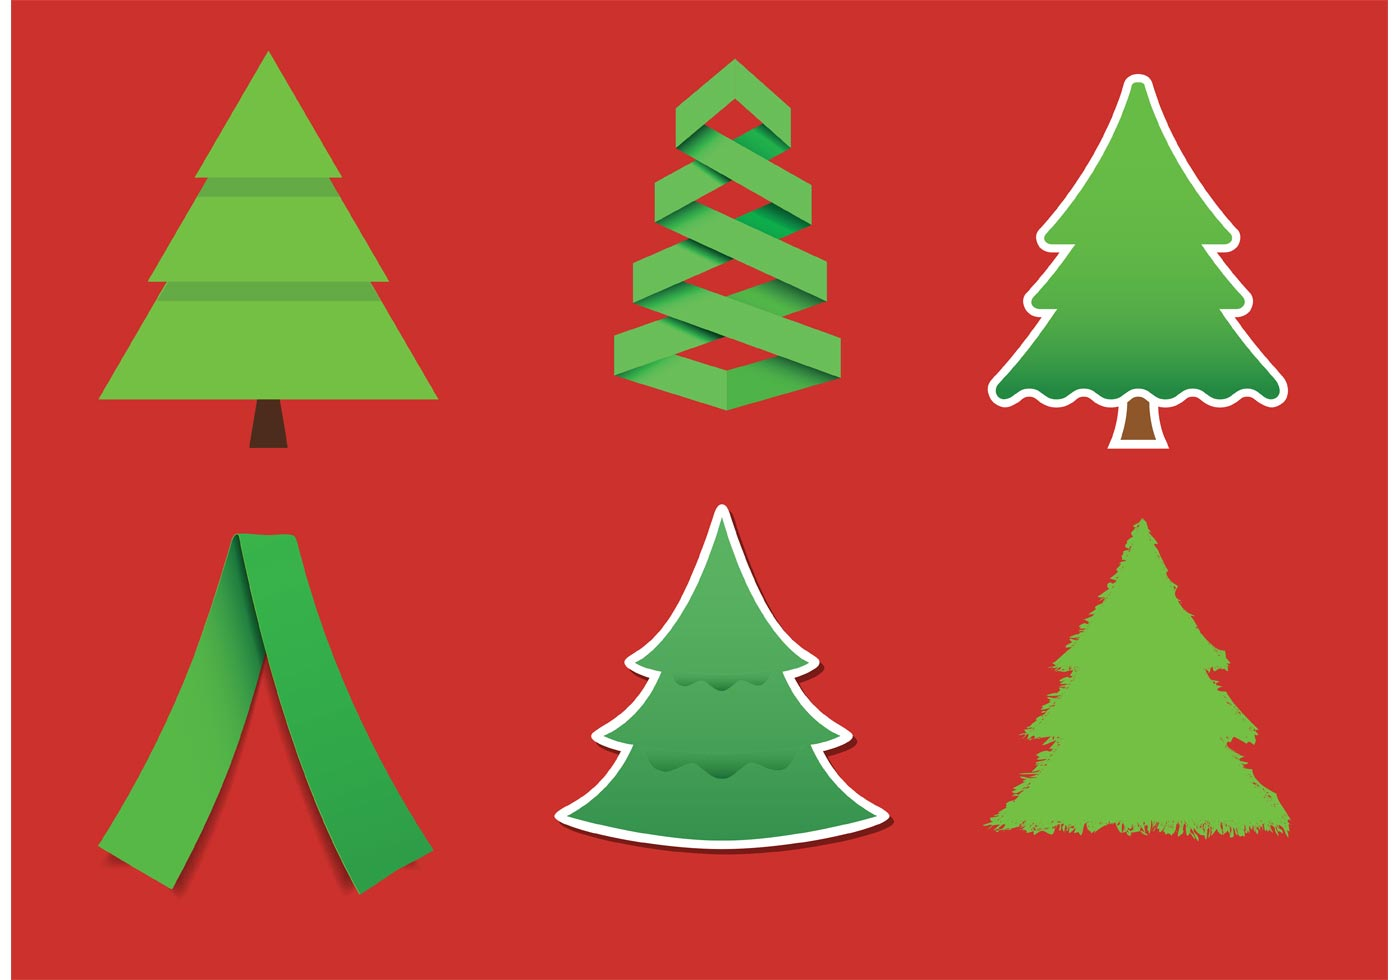 Modern Christmas Tree Vectors - Download Free Vector Art ...